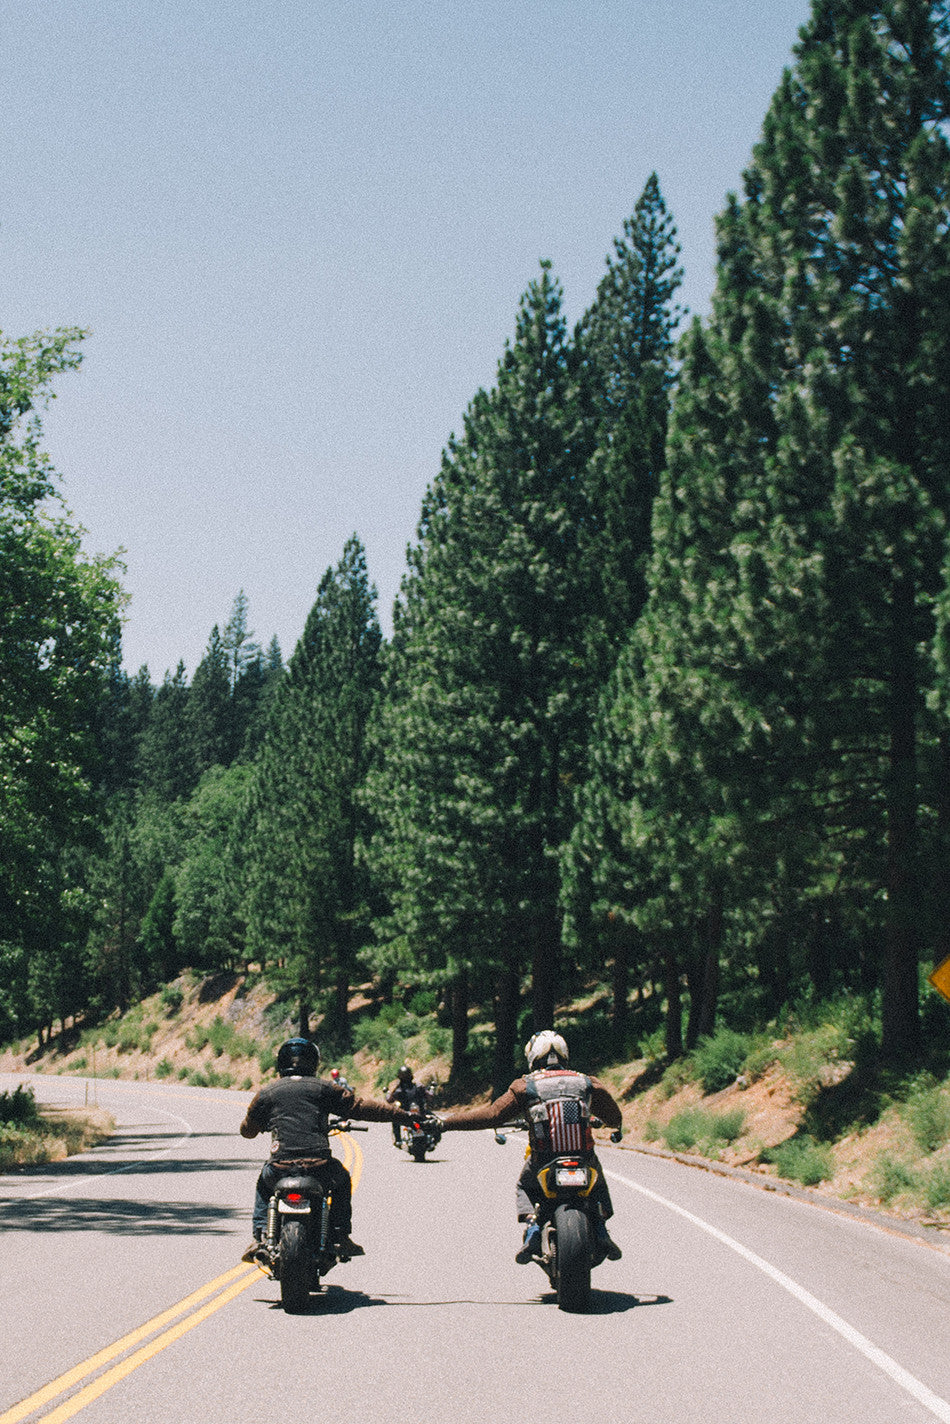 sierra stakeout biltwell motorcycles camping